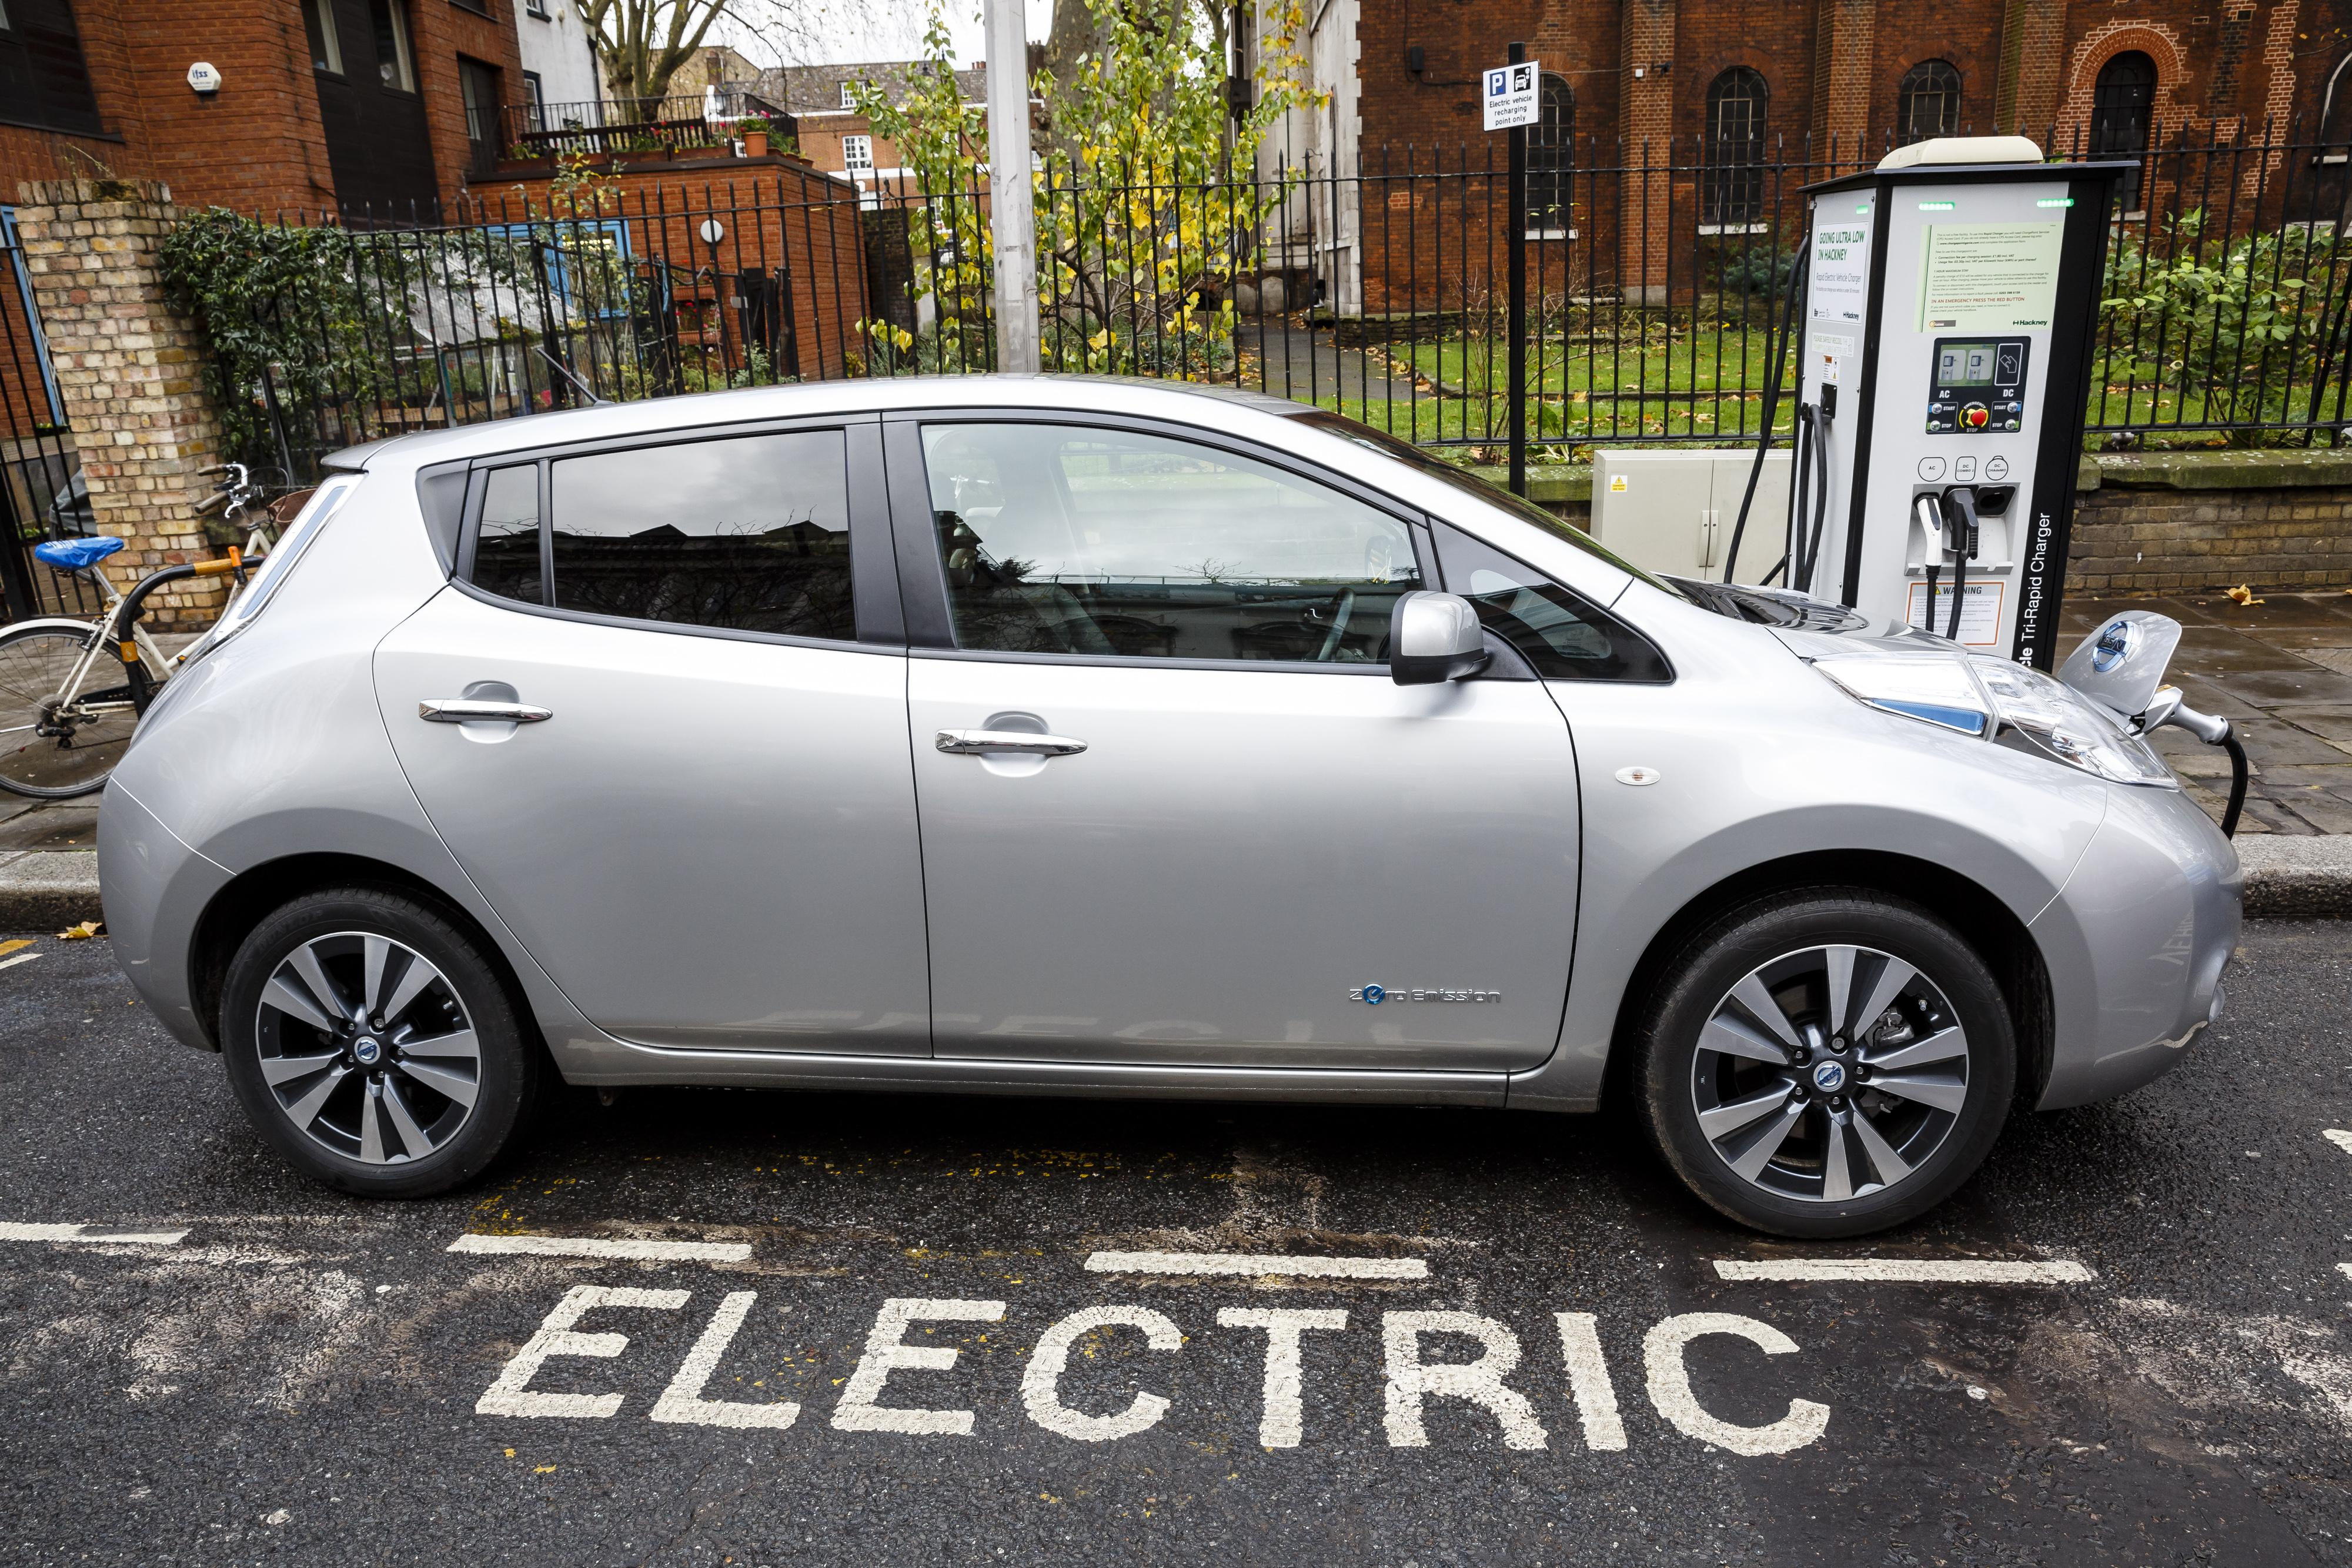 Electric Car Battery Lease The Hidden Costs Of Purchasing A Second Hand Electric Car Revealed